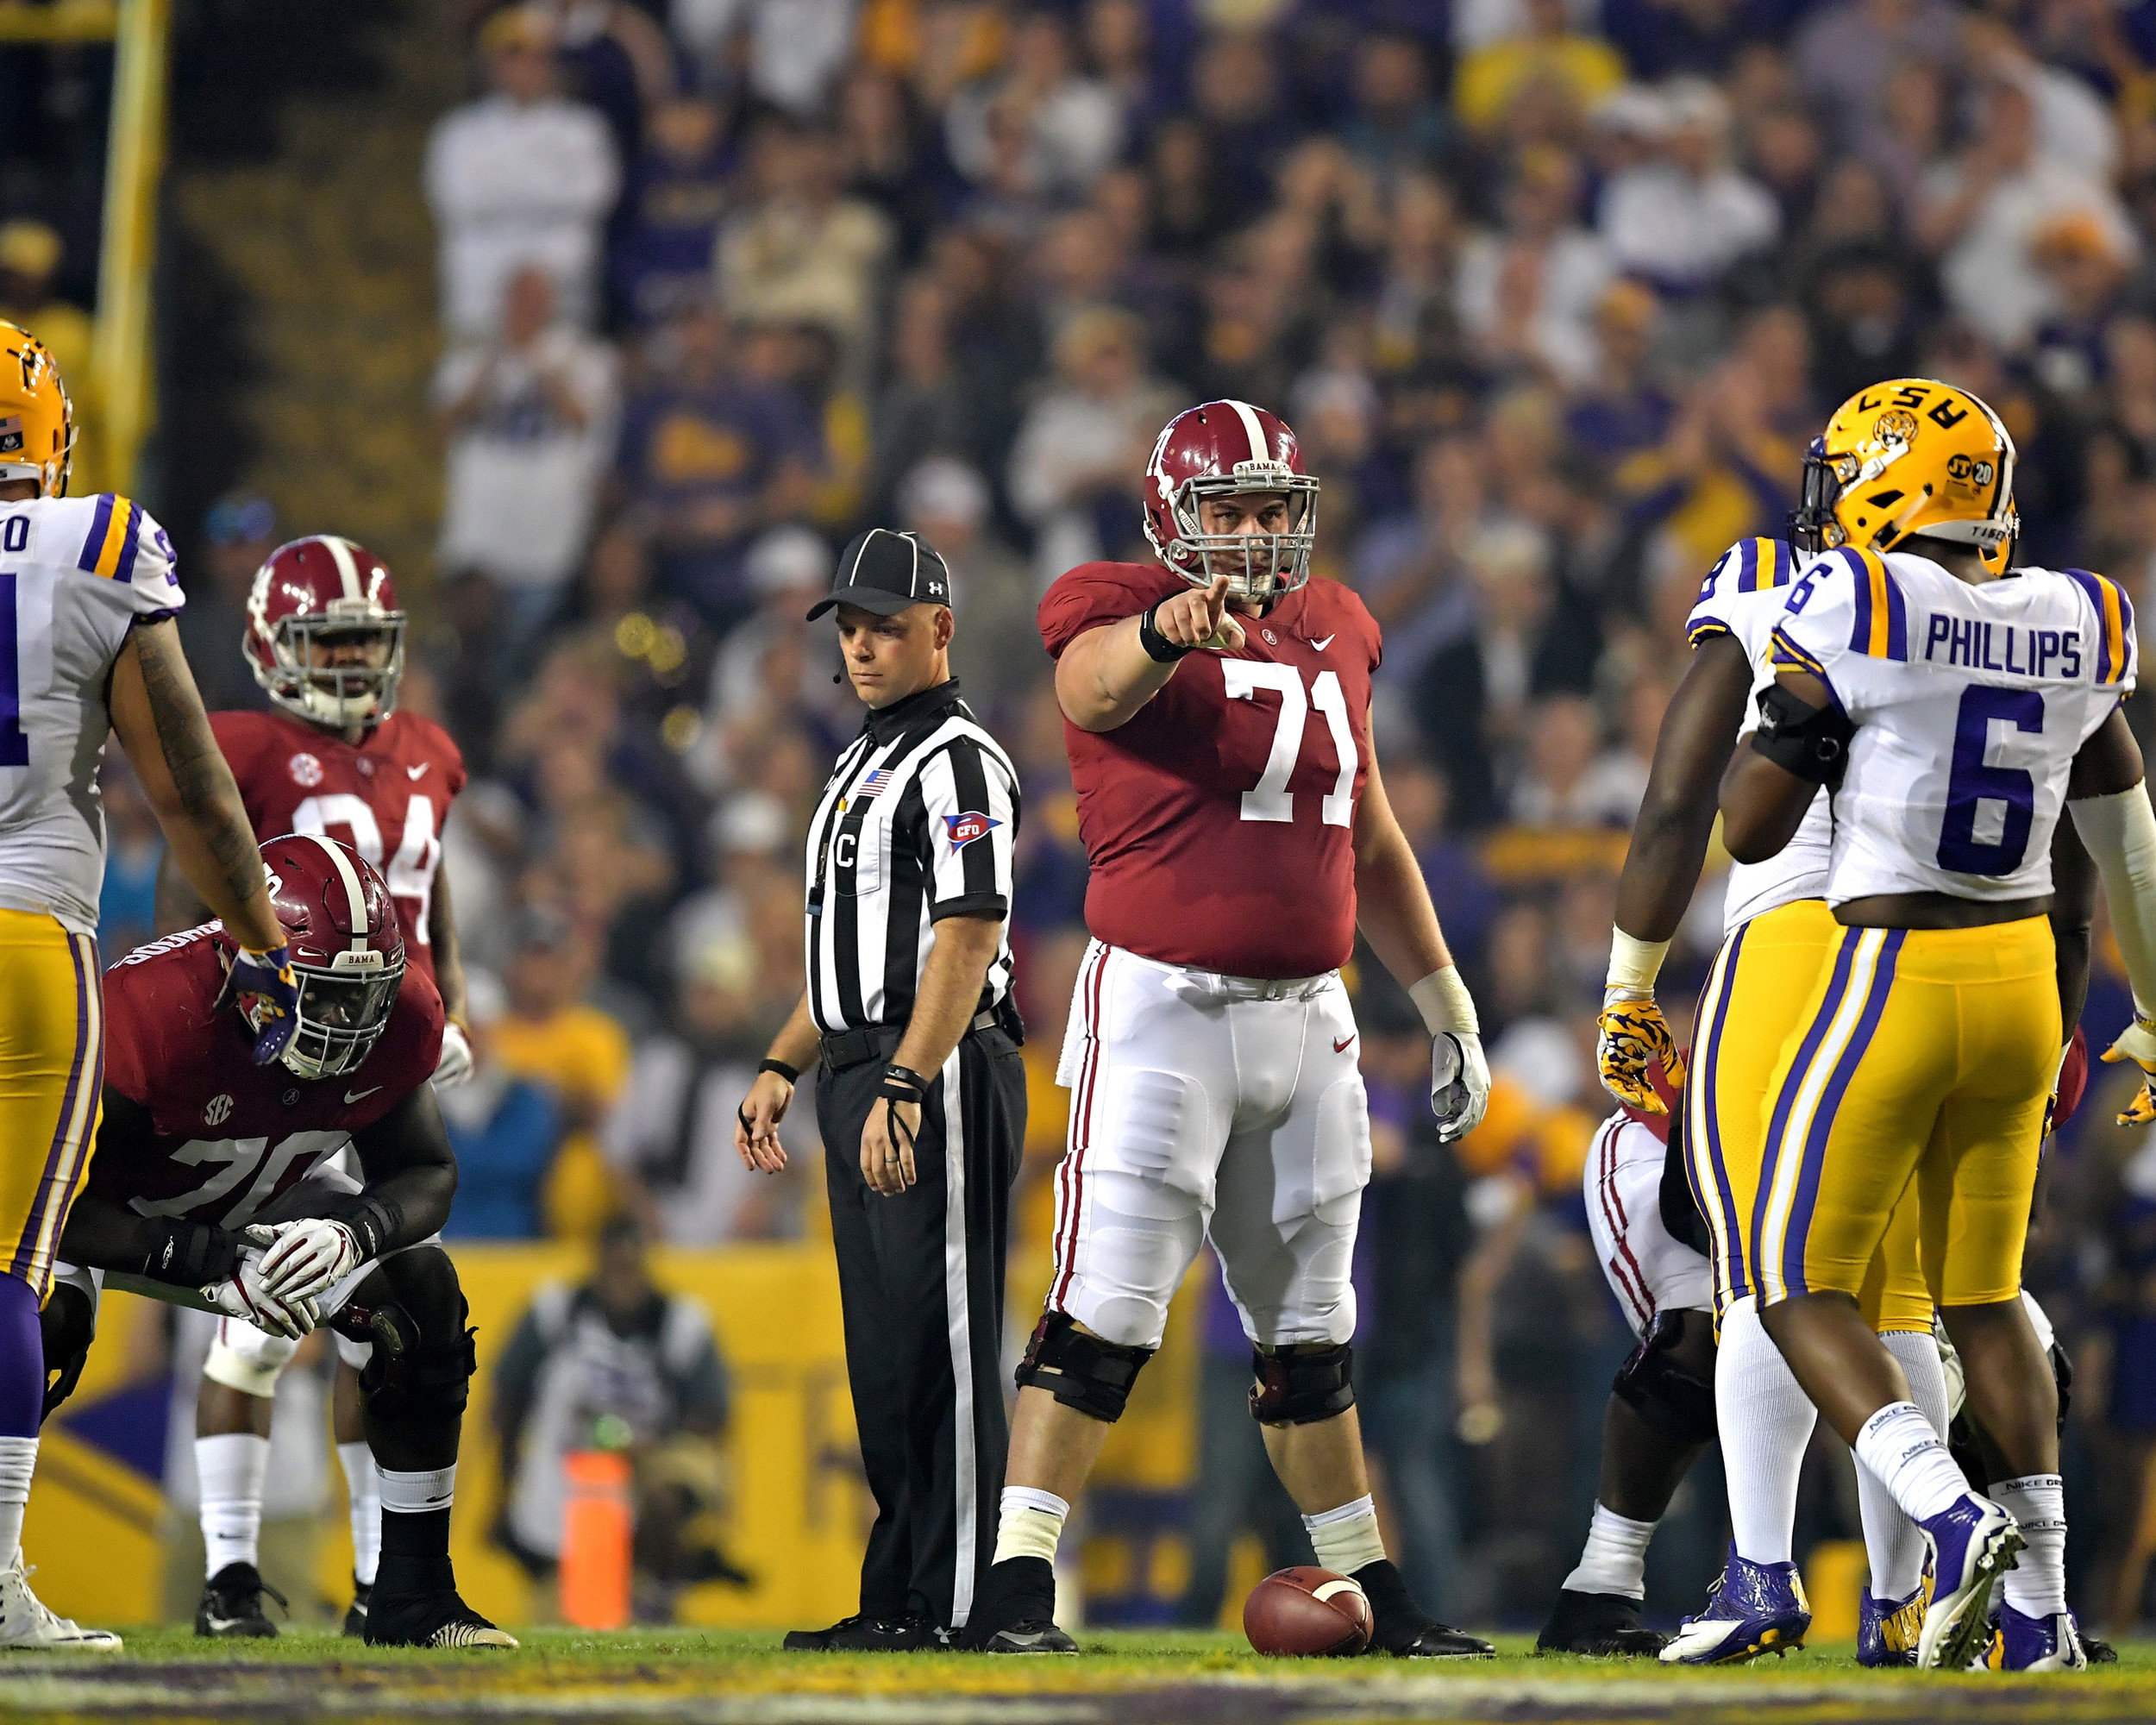 Alabama Crimson Tide offensive lineman Ross Pierschbacher (71) points out defensive players in the first half of an NCAA football game against the LSU Tigers Saturday, November 3, 2018, at Tiger Stadium in Baton Rouge, La. Alabama wins 29-0. (Photo by Lee Walls)